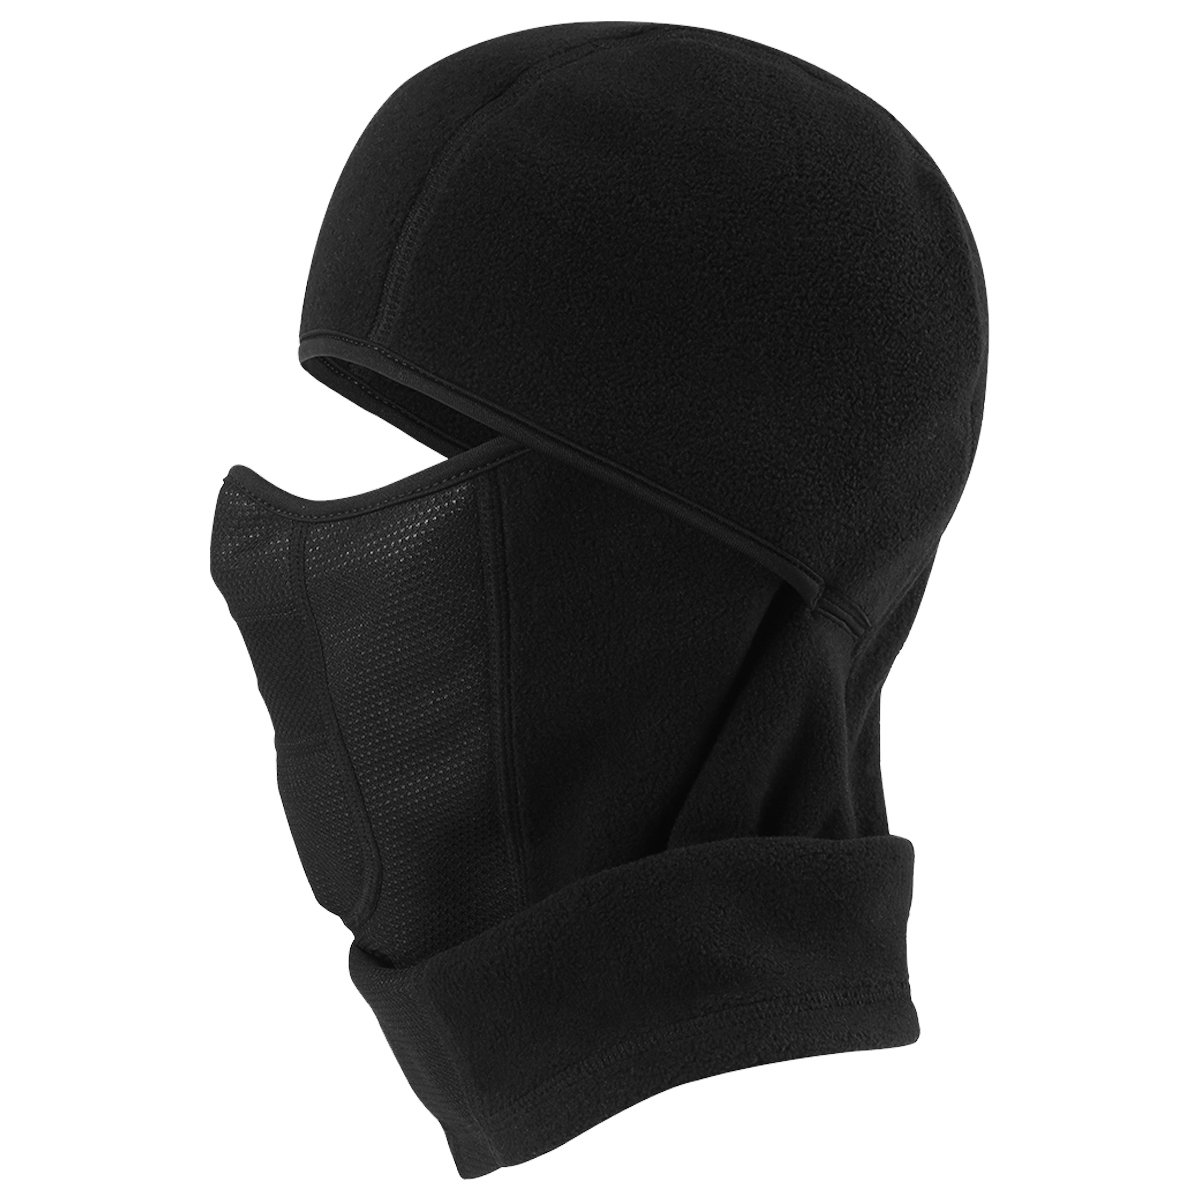 Your Choice Balaclava Tactical Skull Motorcycle Full Face Ski Mask Thin Breathing Windproof UV Protective Hat for Women Men